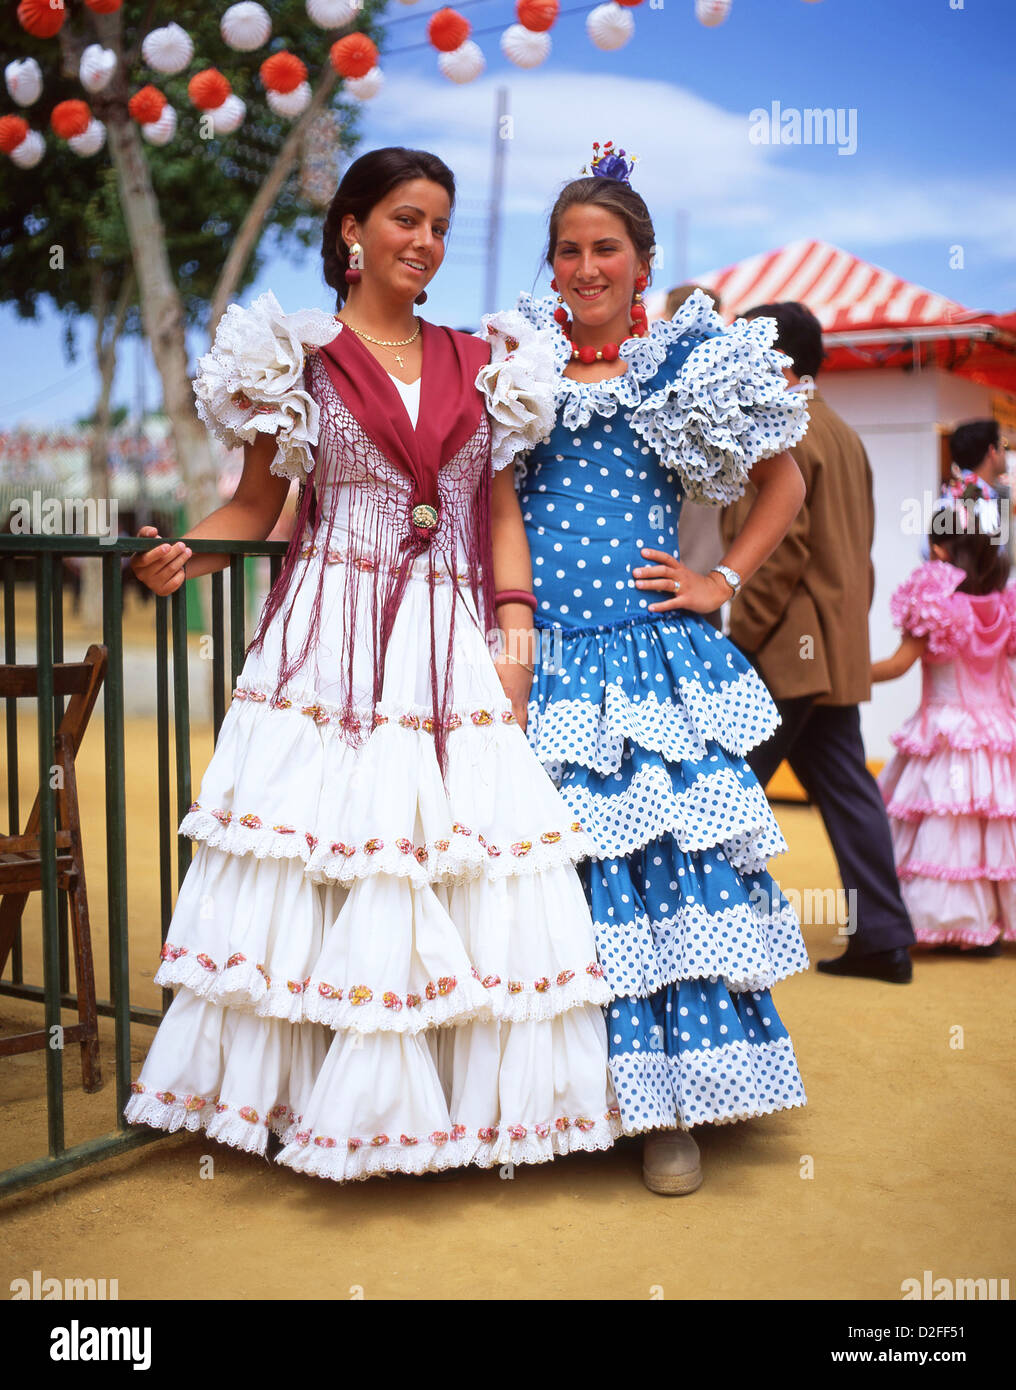 Young women in flamenco dresses at feria de abril de for Espectaculo flamenco seville sevilla